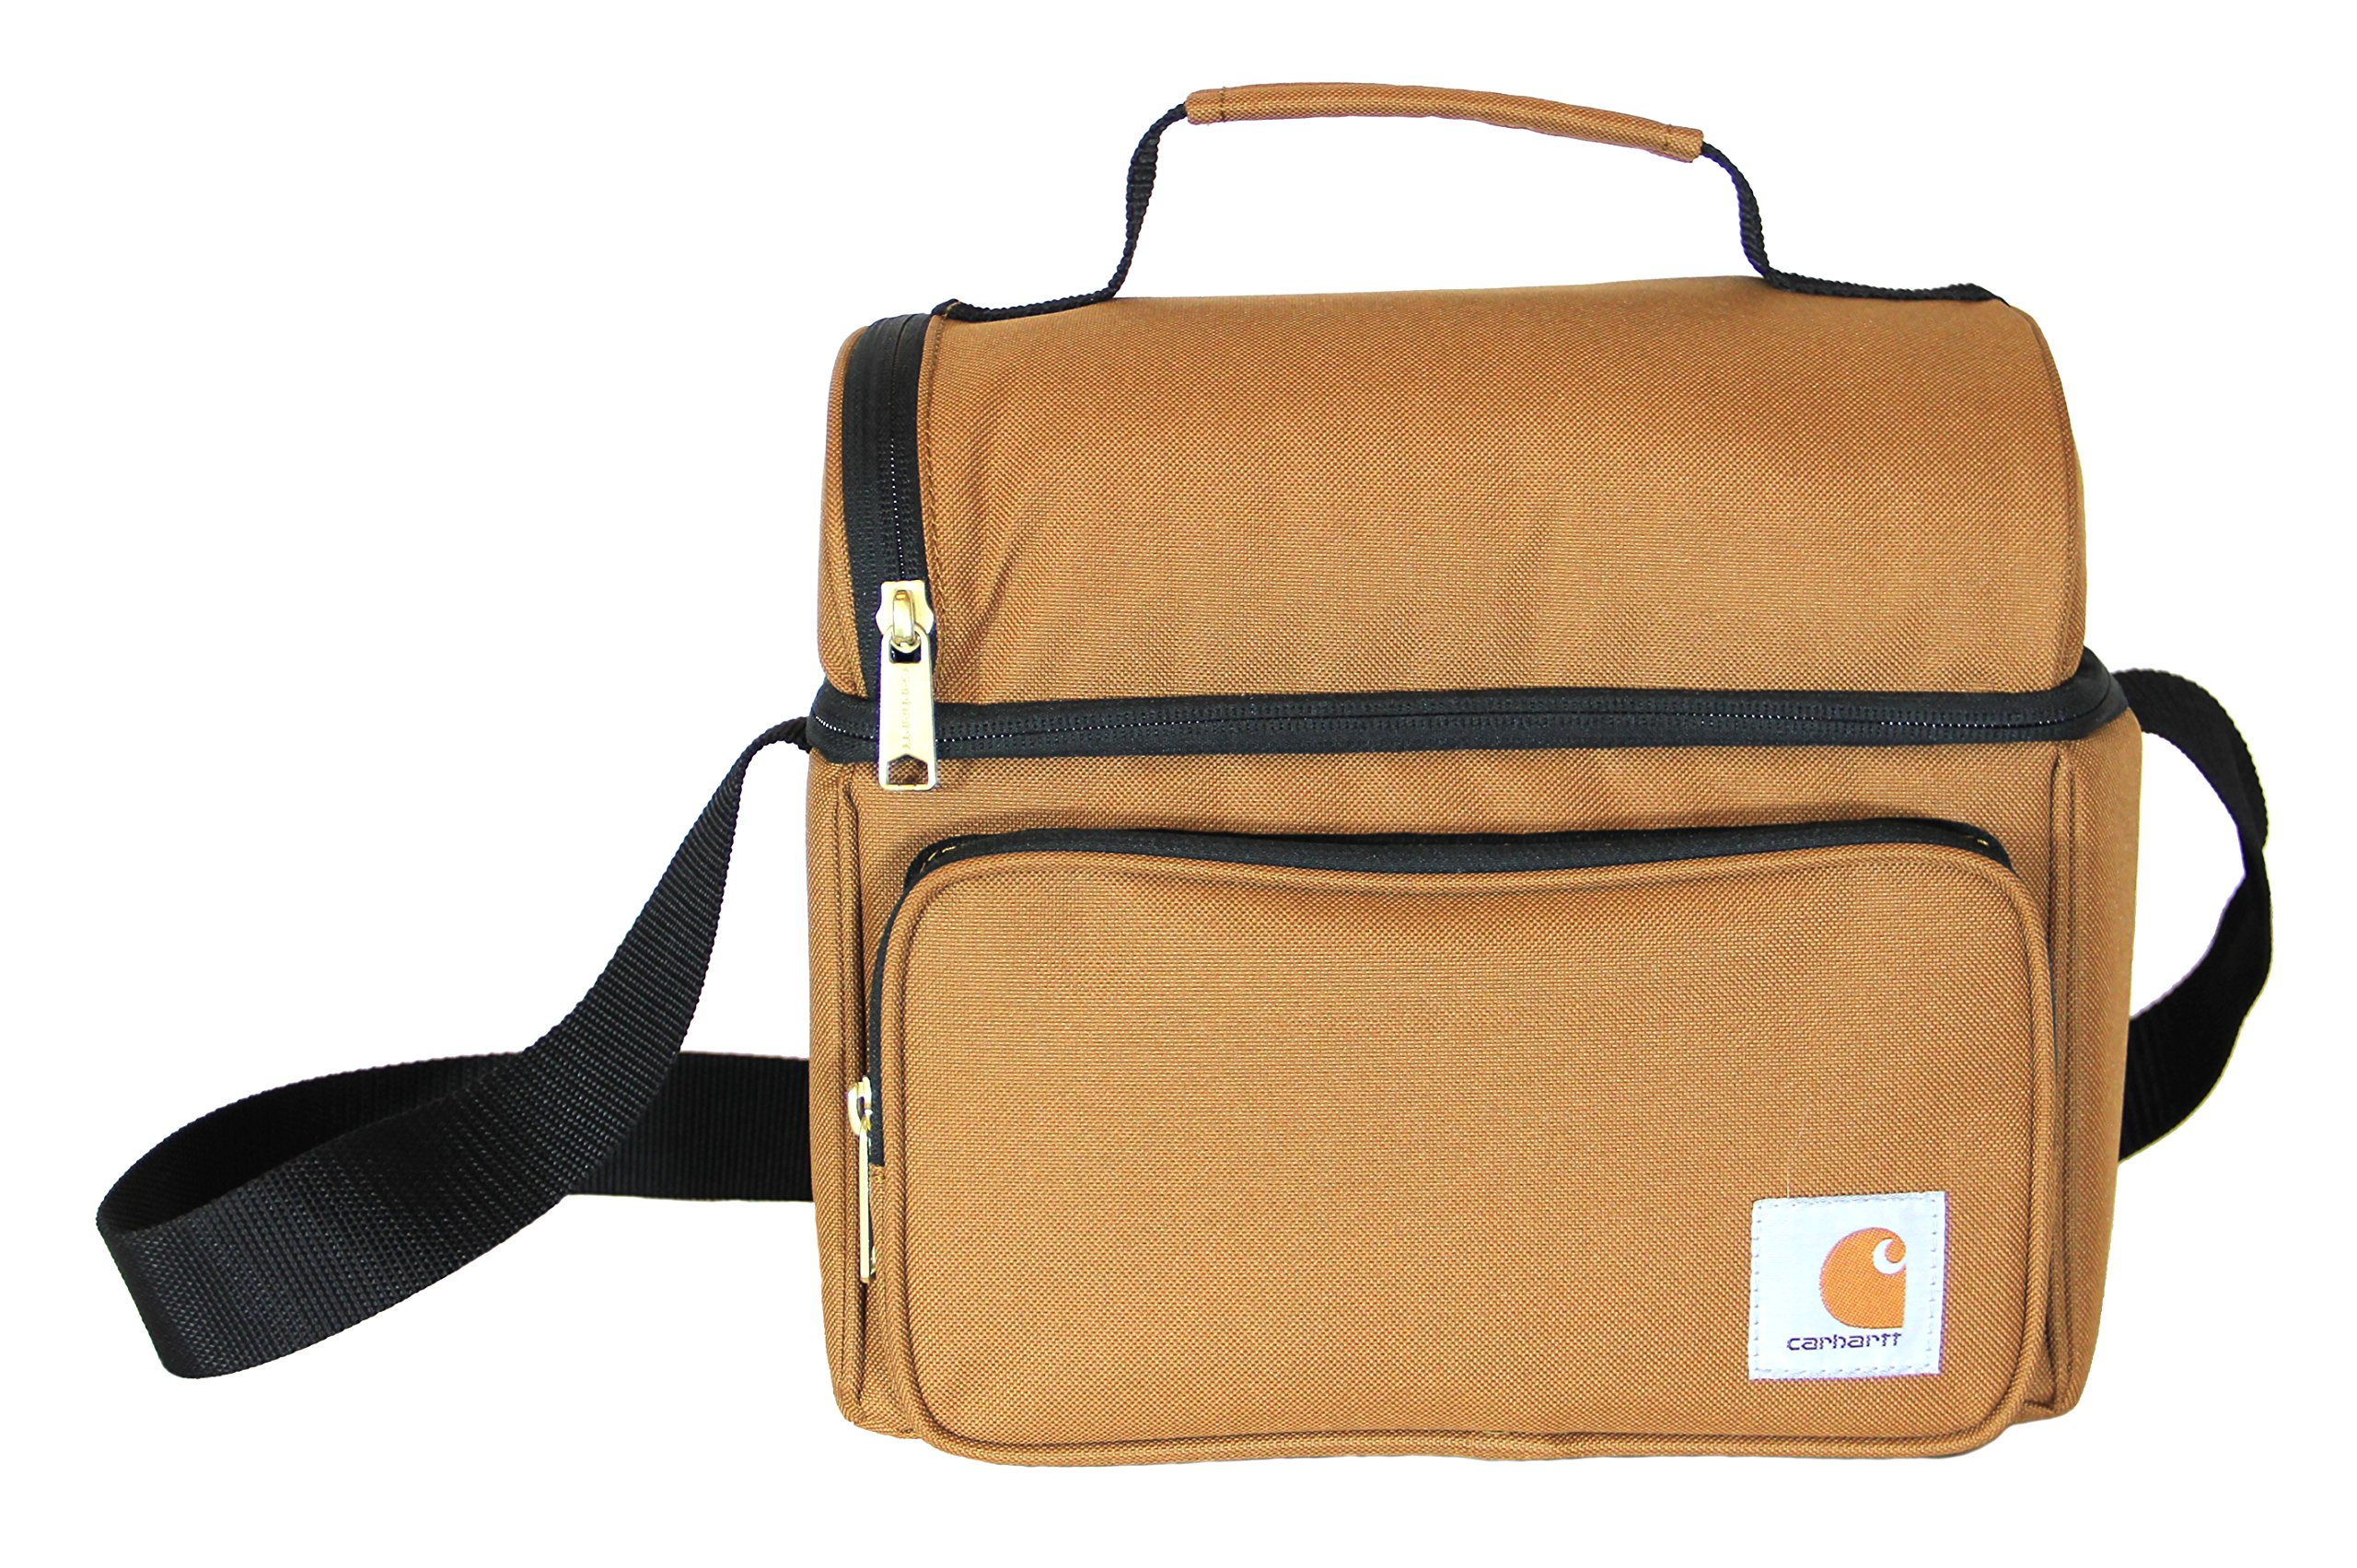 fe180ce5dc7 Carhartt 35810002 Deluxe Dual Compartment Insulated Lunch Cooler Bag ...